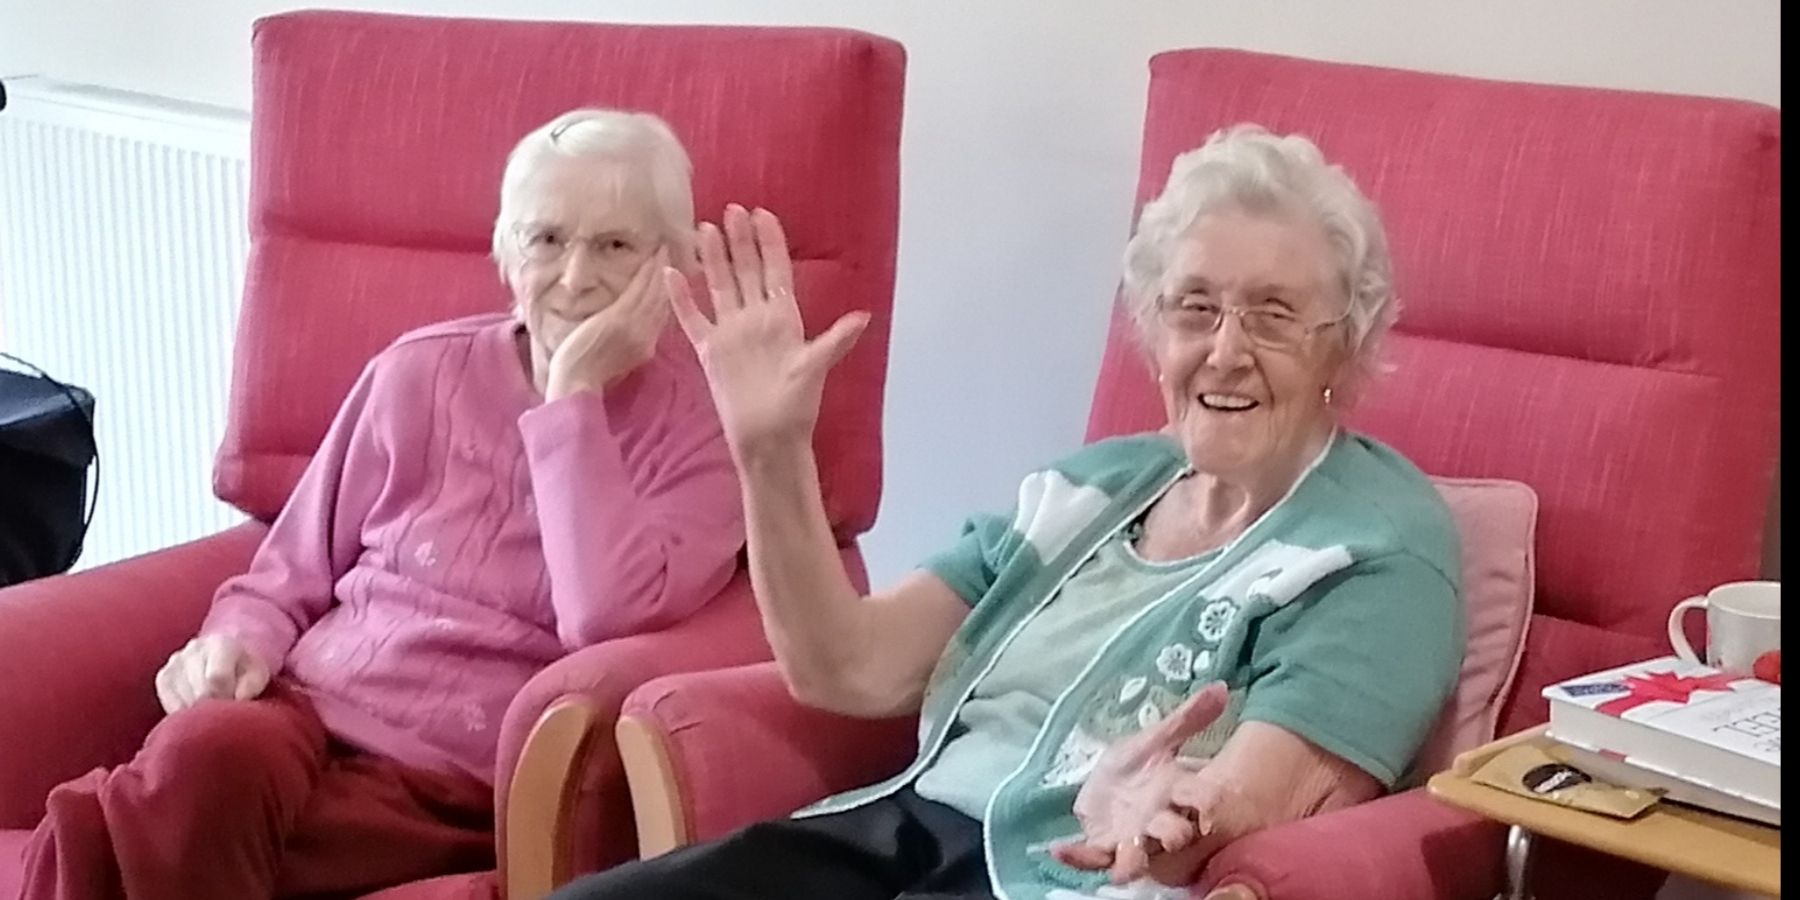 Virtual Tours Open Up The World For Residents At Hammerwich Hall